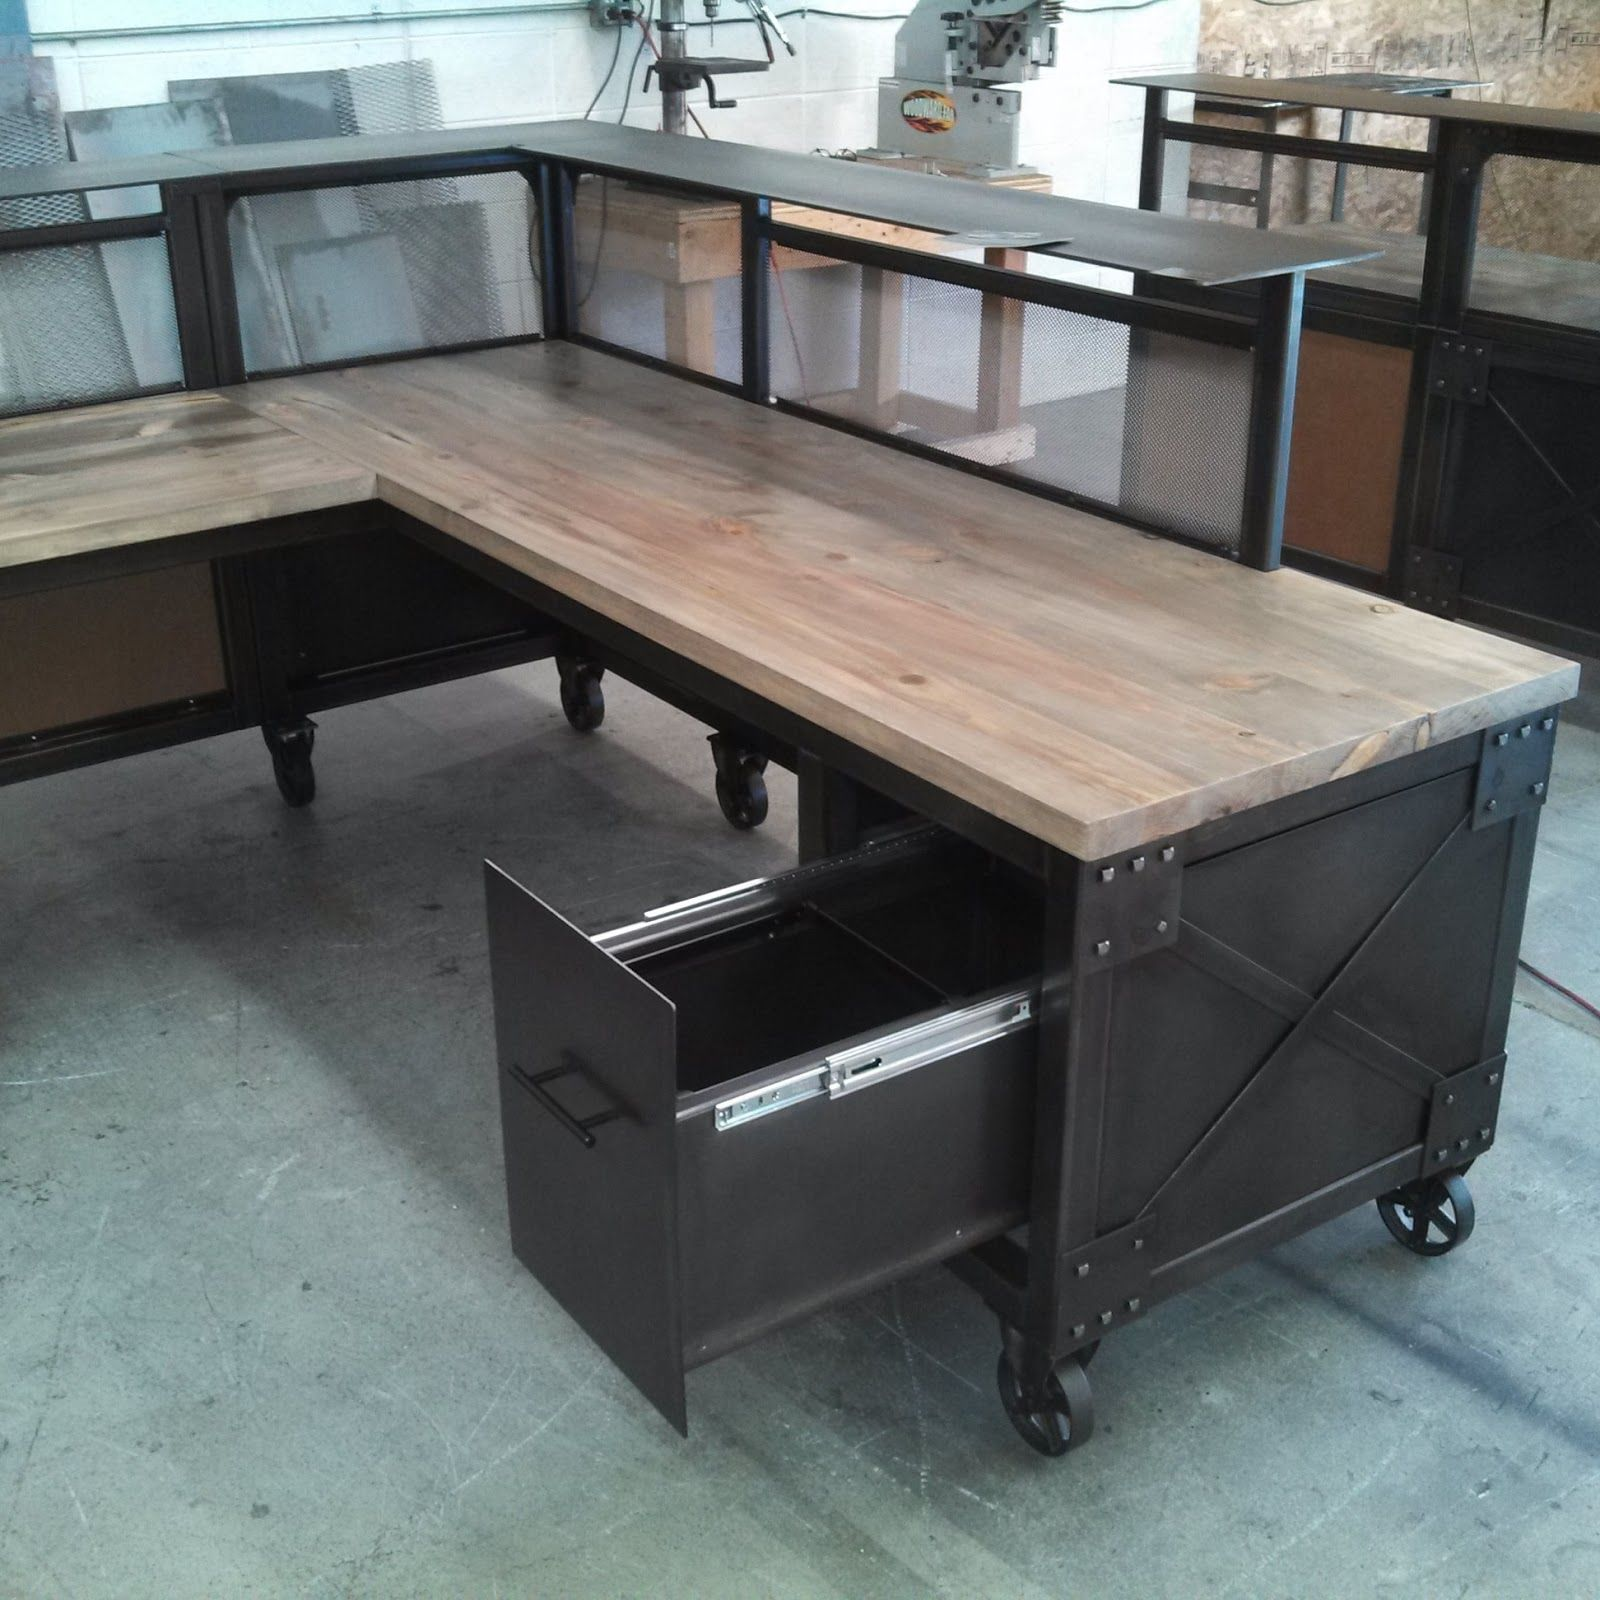 org diy astonishing a desk build greeniteconomicsummit to reclaimed how wood prepare office l